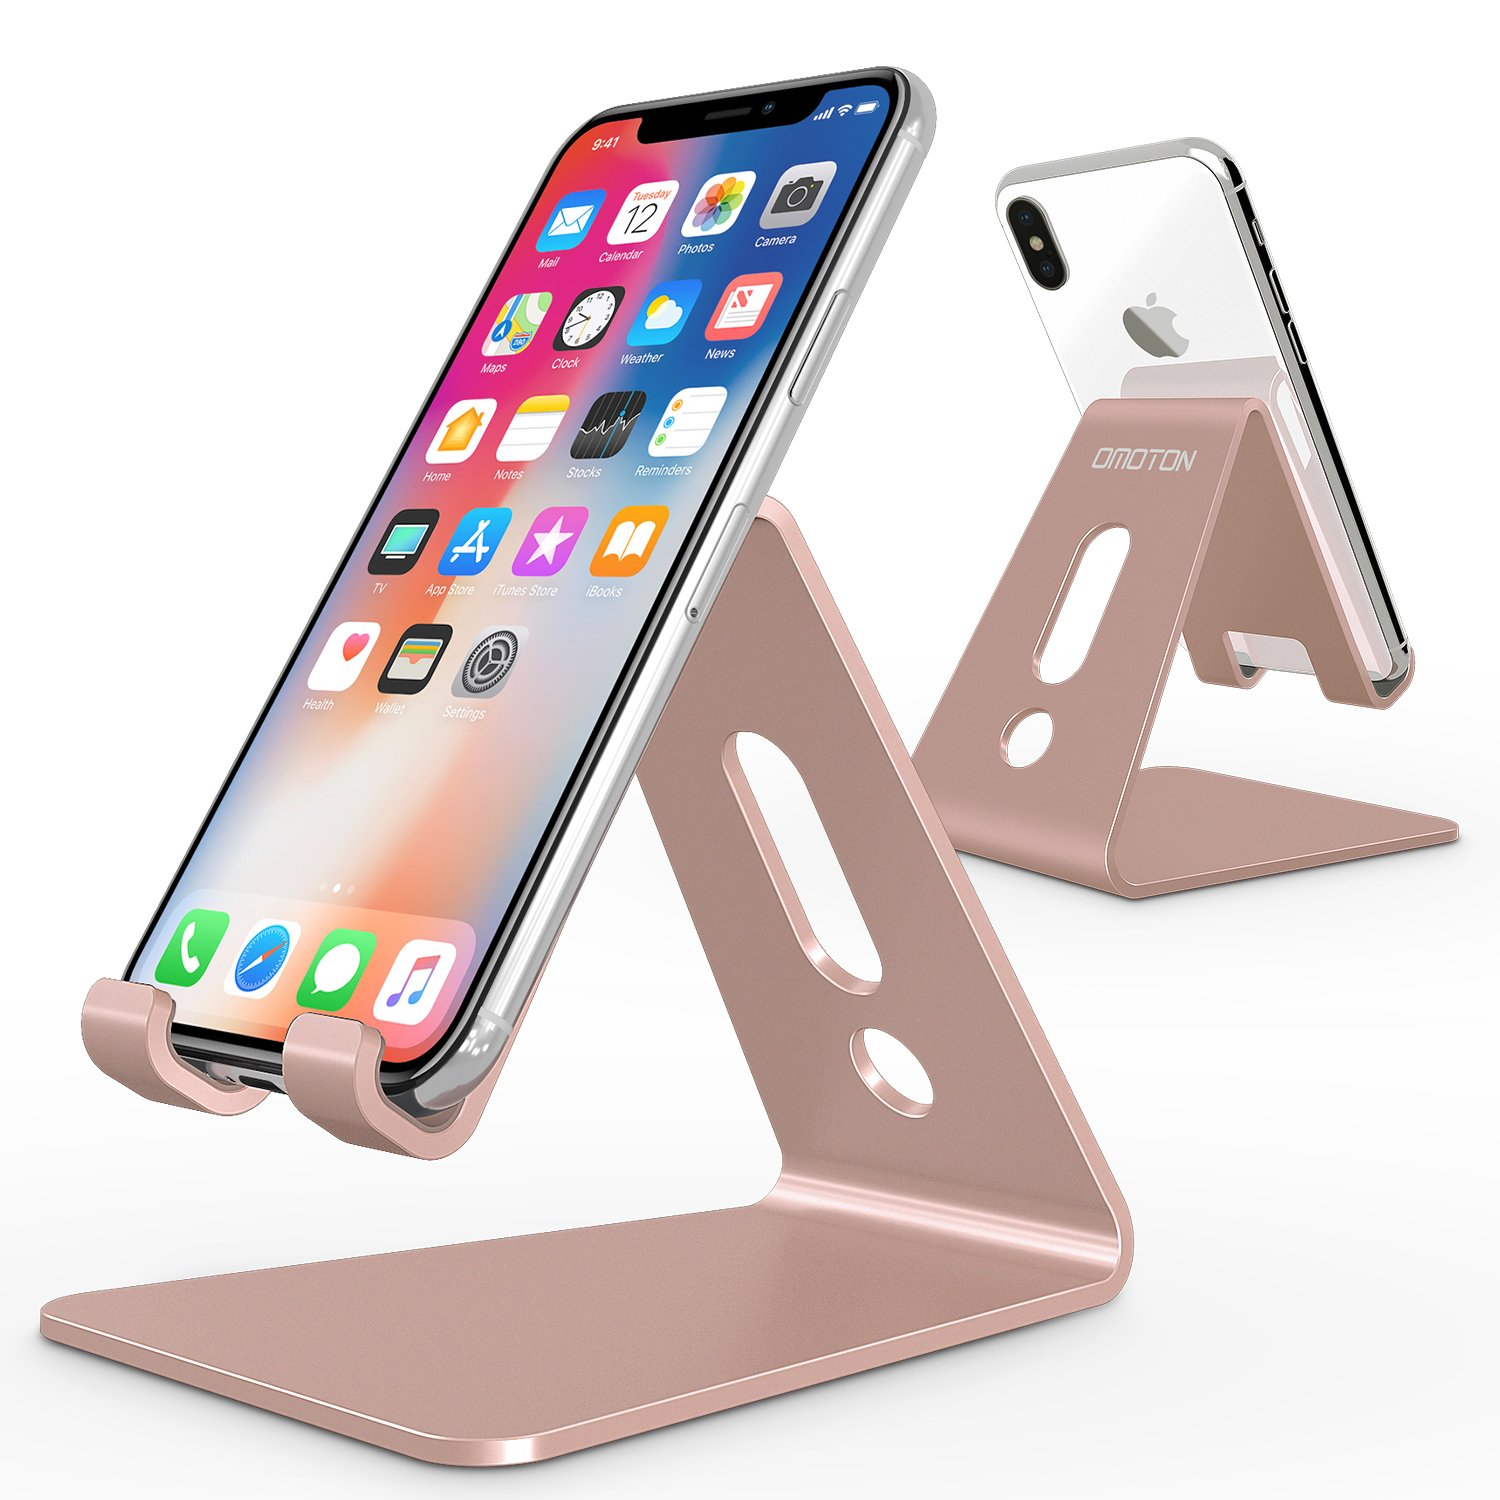 [Updated Solid Version] OMOTON Desktop Cell Phone Stand Tablet Stand, Advanced 4mm Thickness Aluminum Stand Holder for Mobile Phone (All Size) and Tablet (Up to 10.1 inch),Rose gold product image